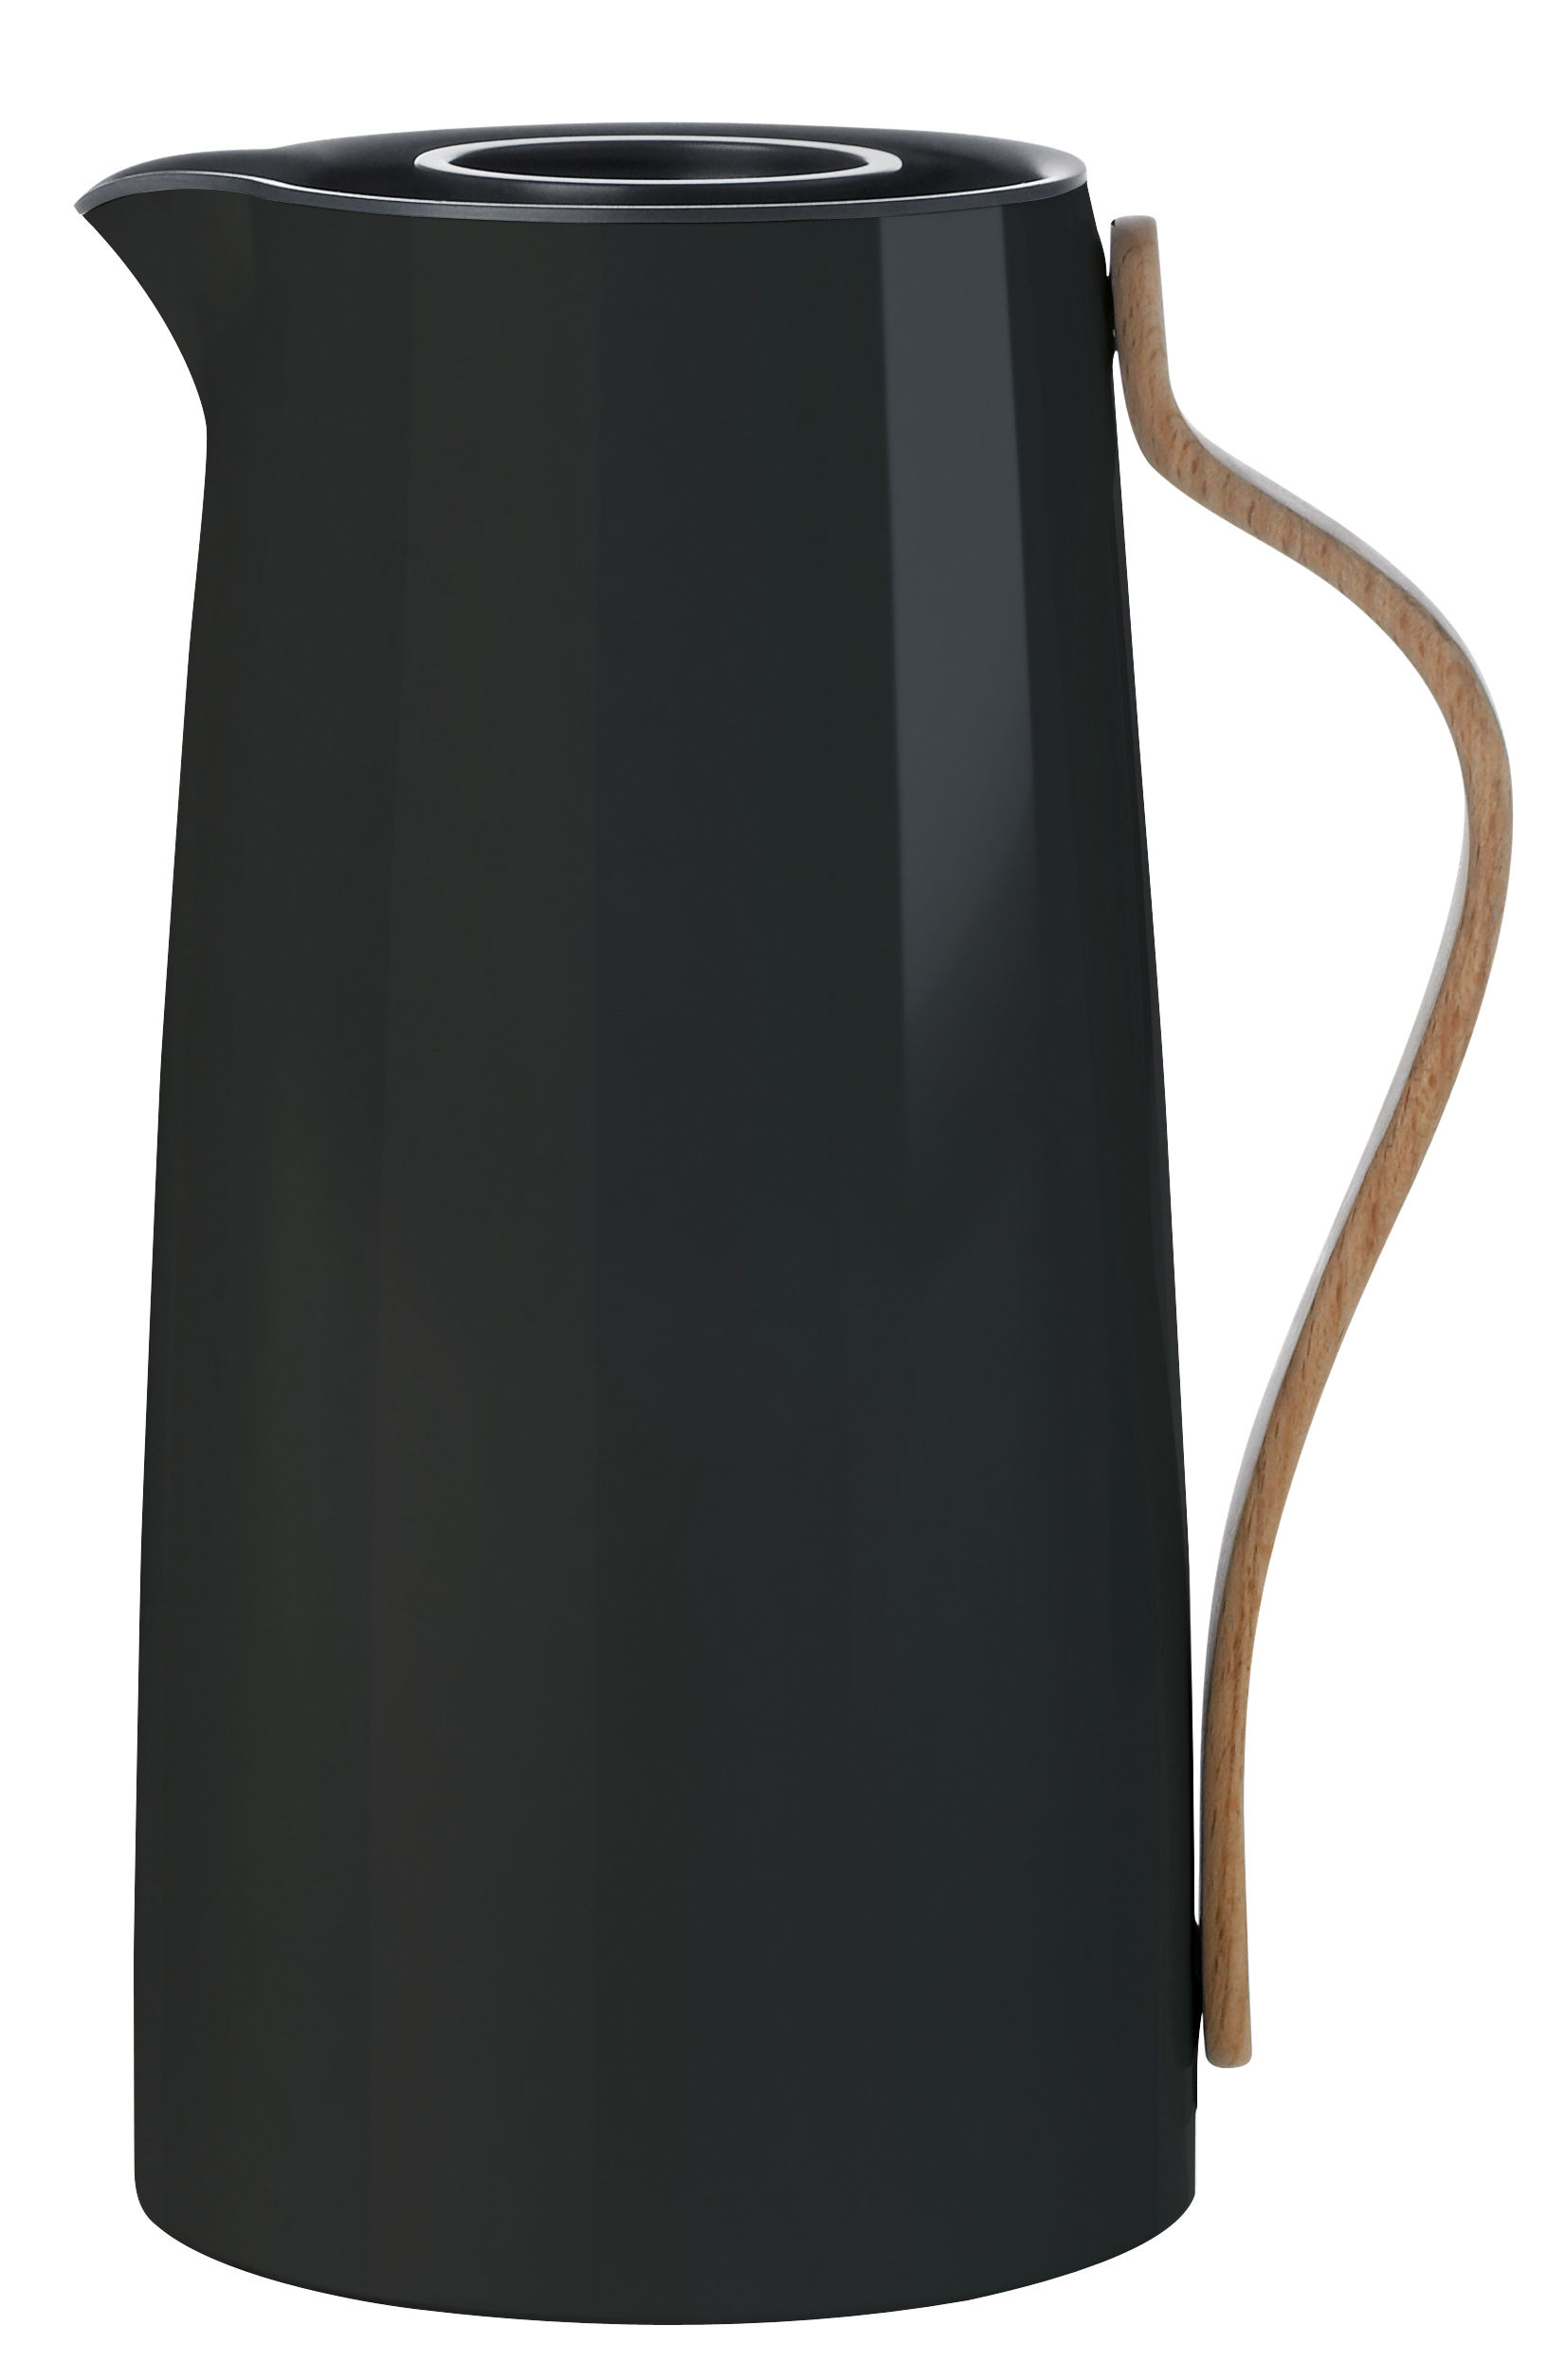 Tableware - Tea & Coffee Accessories - Emma Insulated jug - 1,2 L by Stelton - Black & wood - Beechwood, Lacquered stainless steel